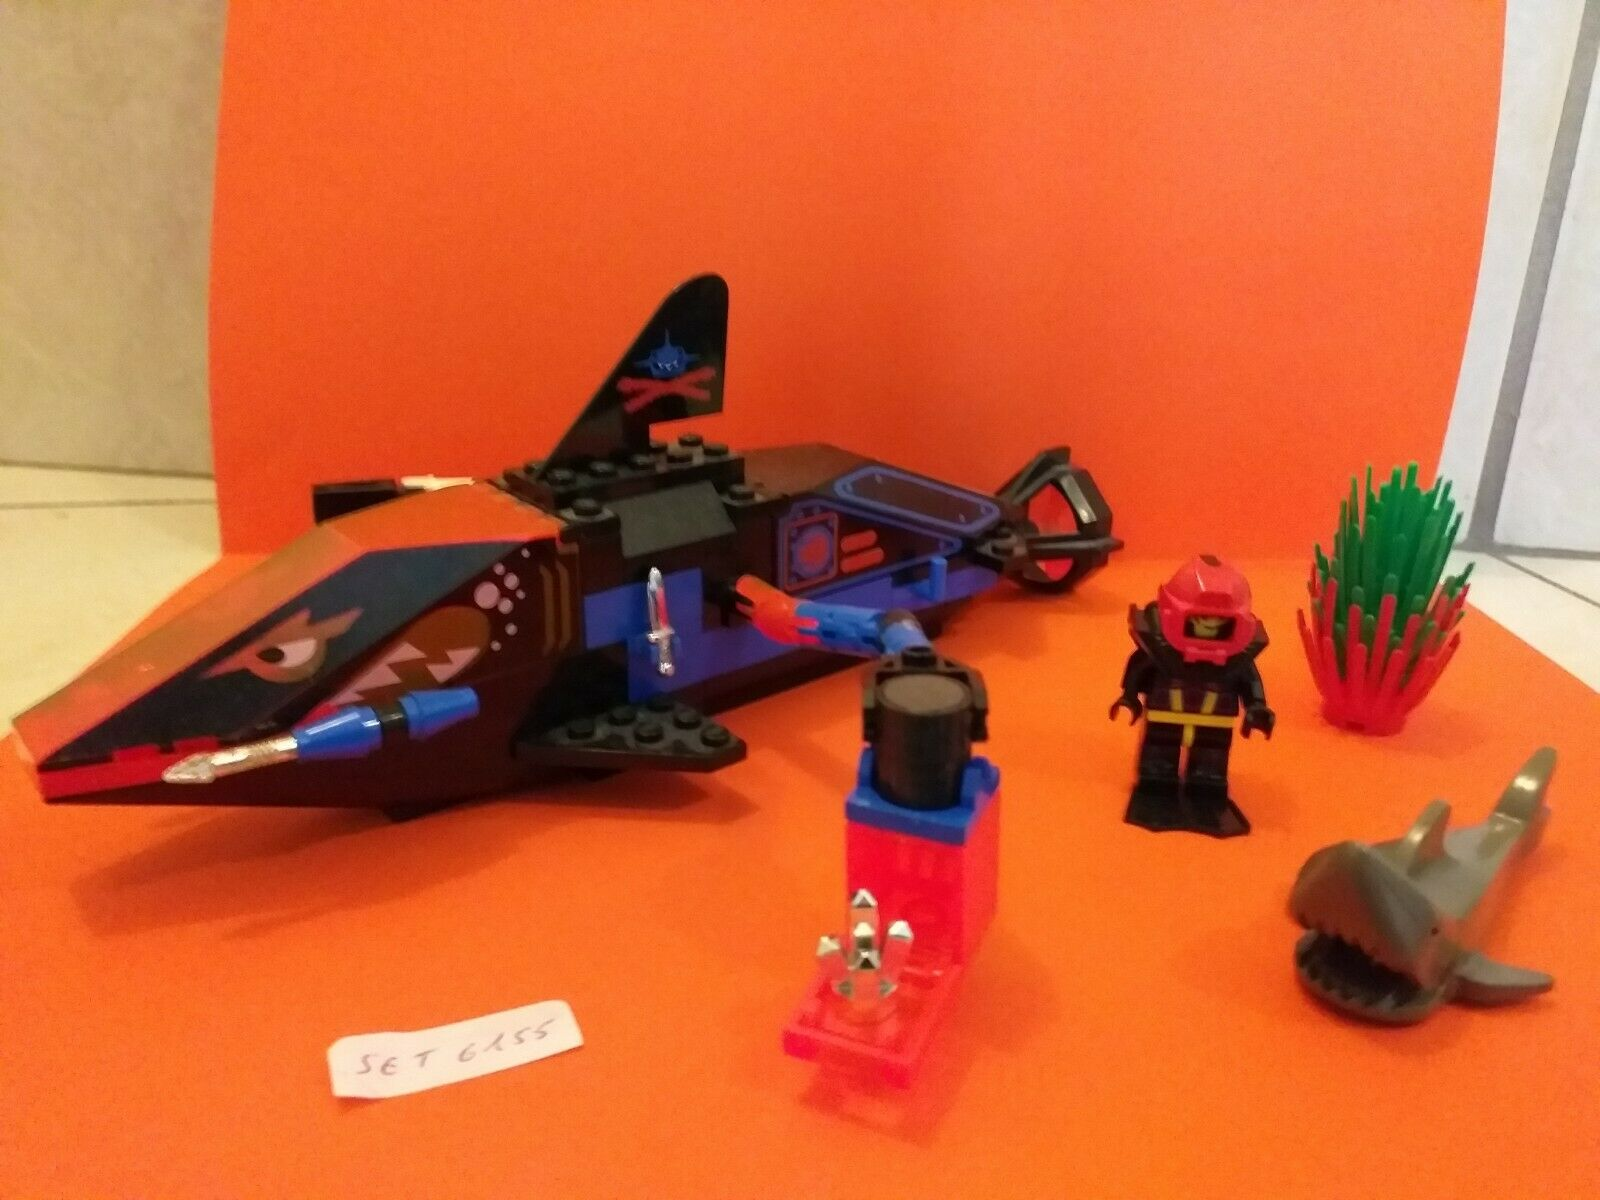 LEGO 6155 100% COMPLET   GRAND REQUIN, PERSONNAGE, REQUIN ET DIVERS   ANNEE 1995